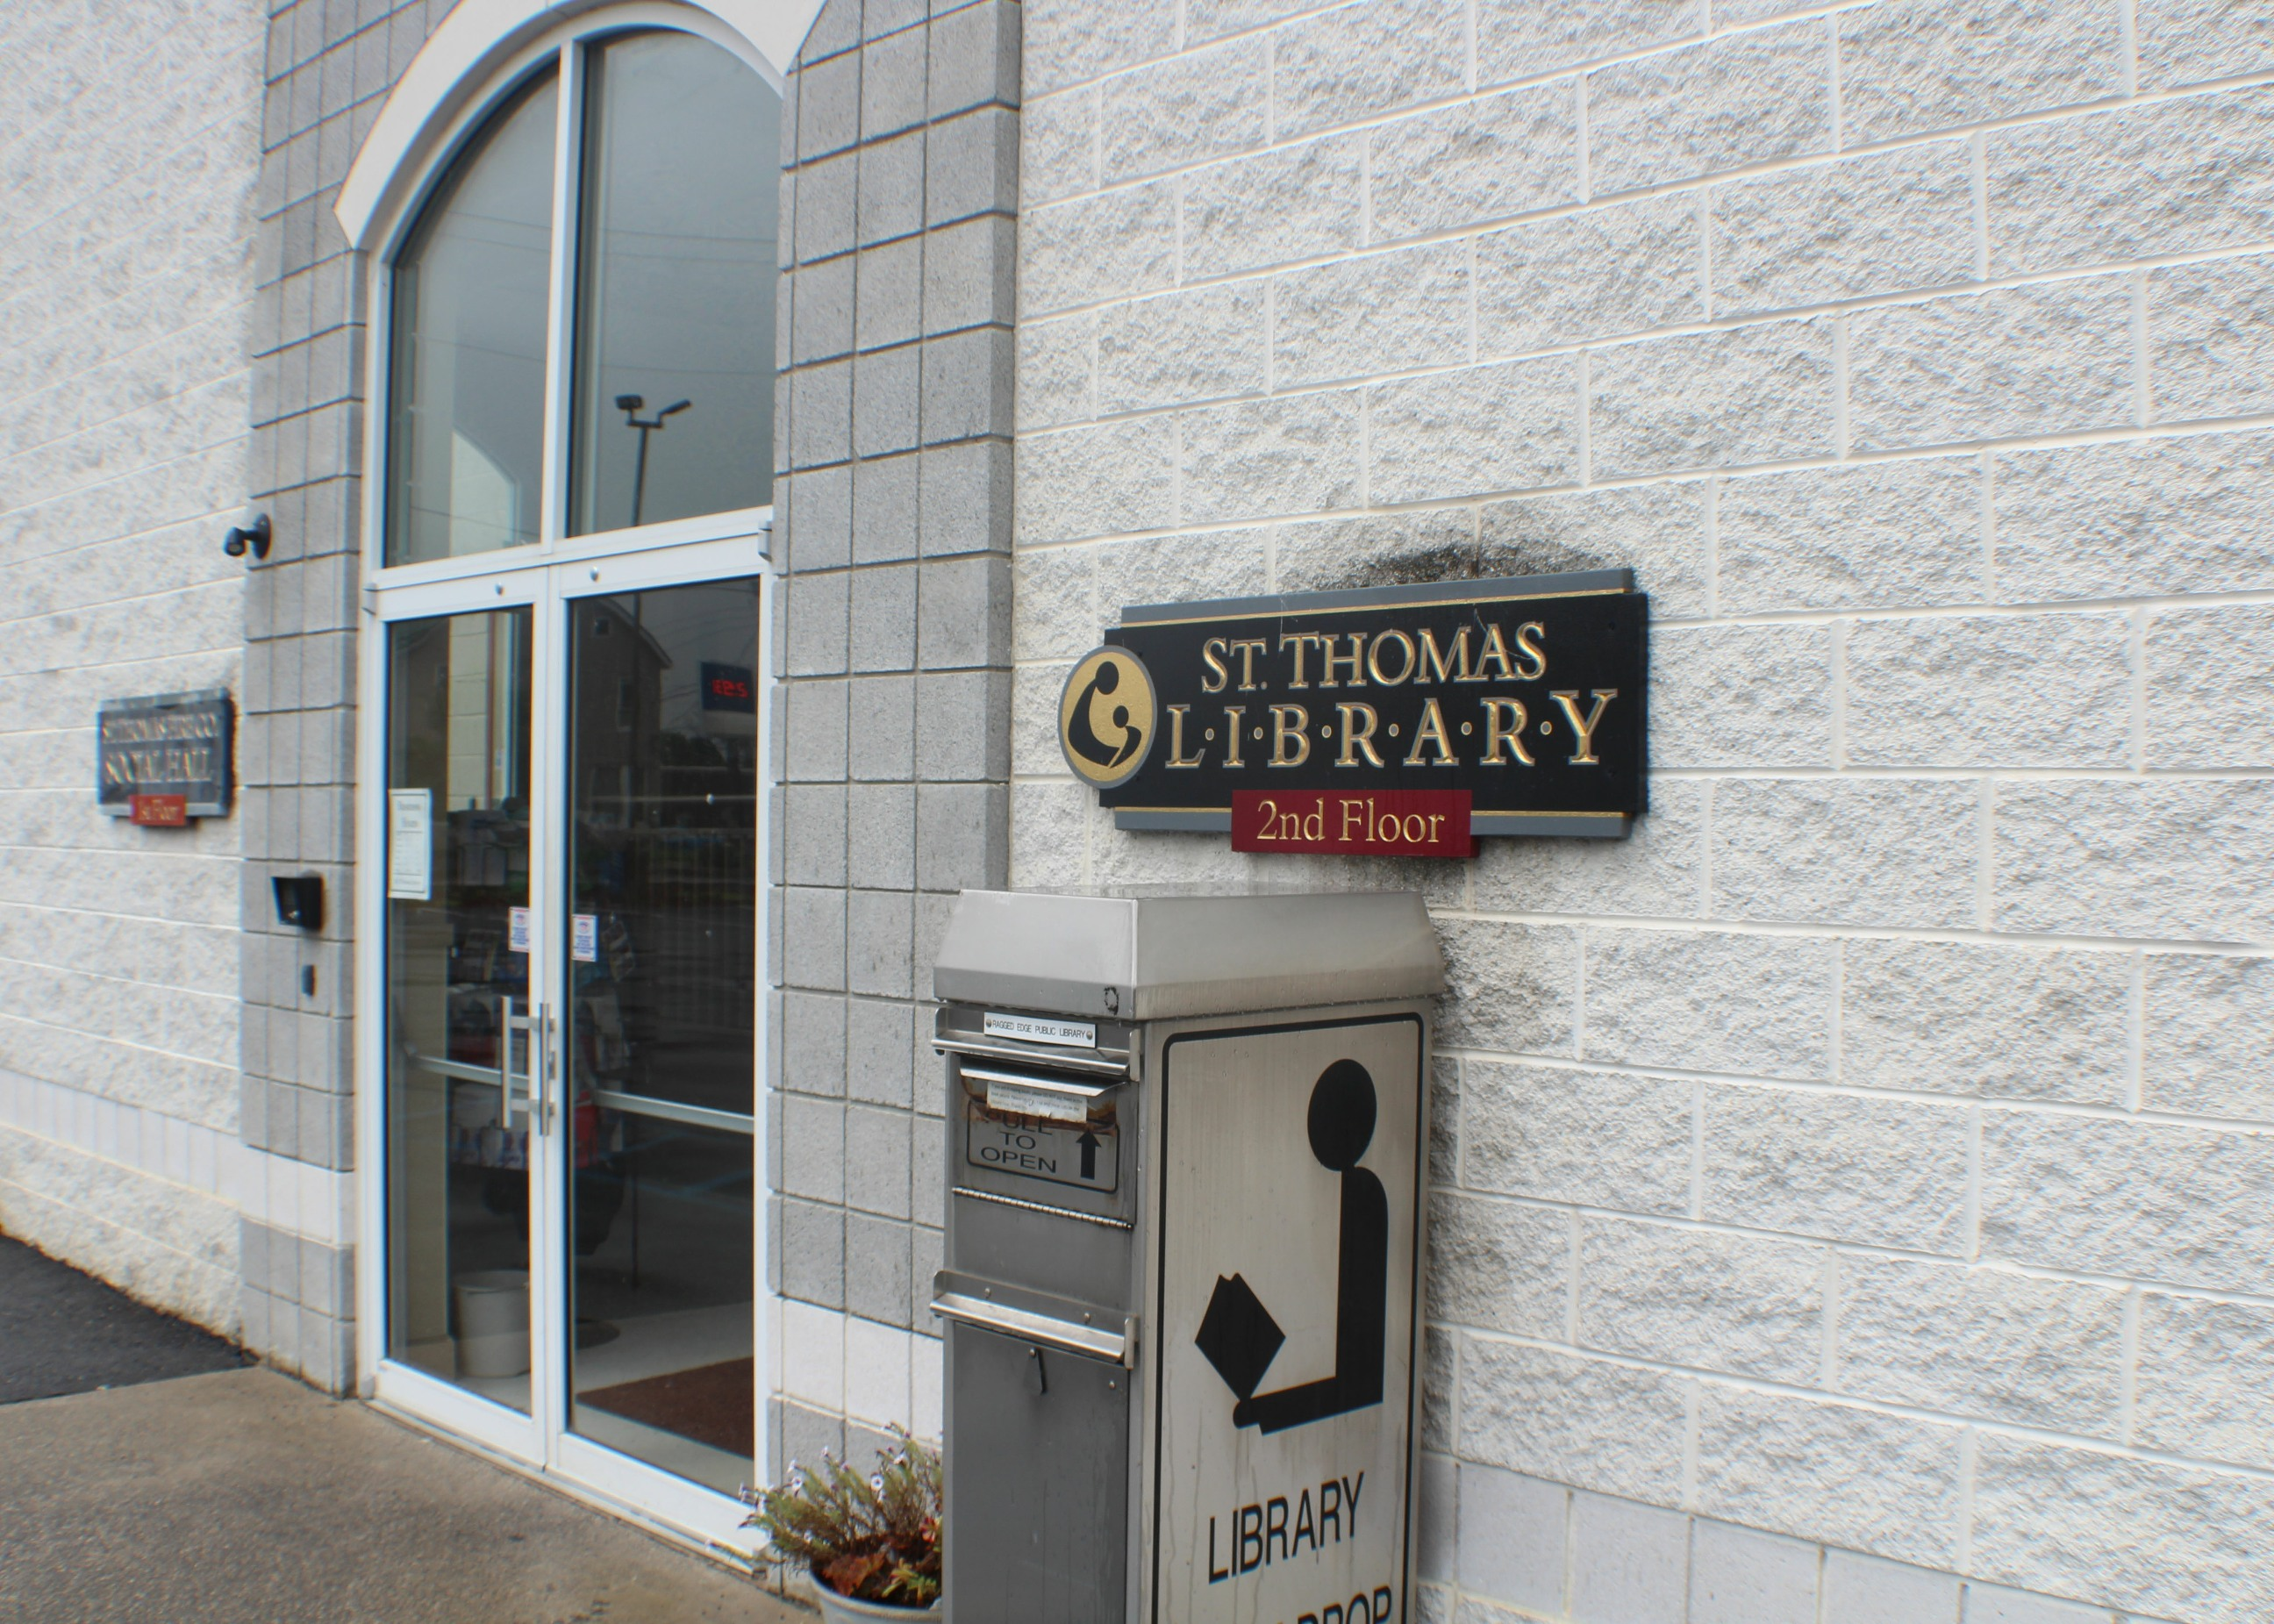 St Thomas Library